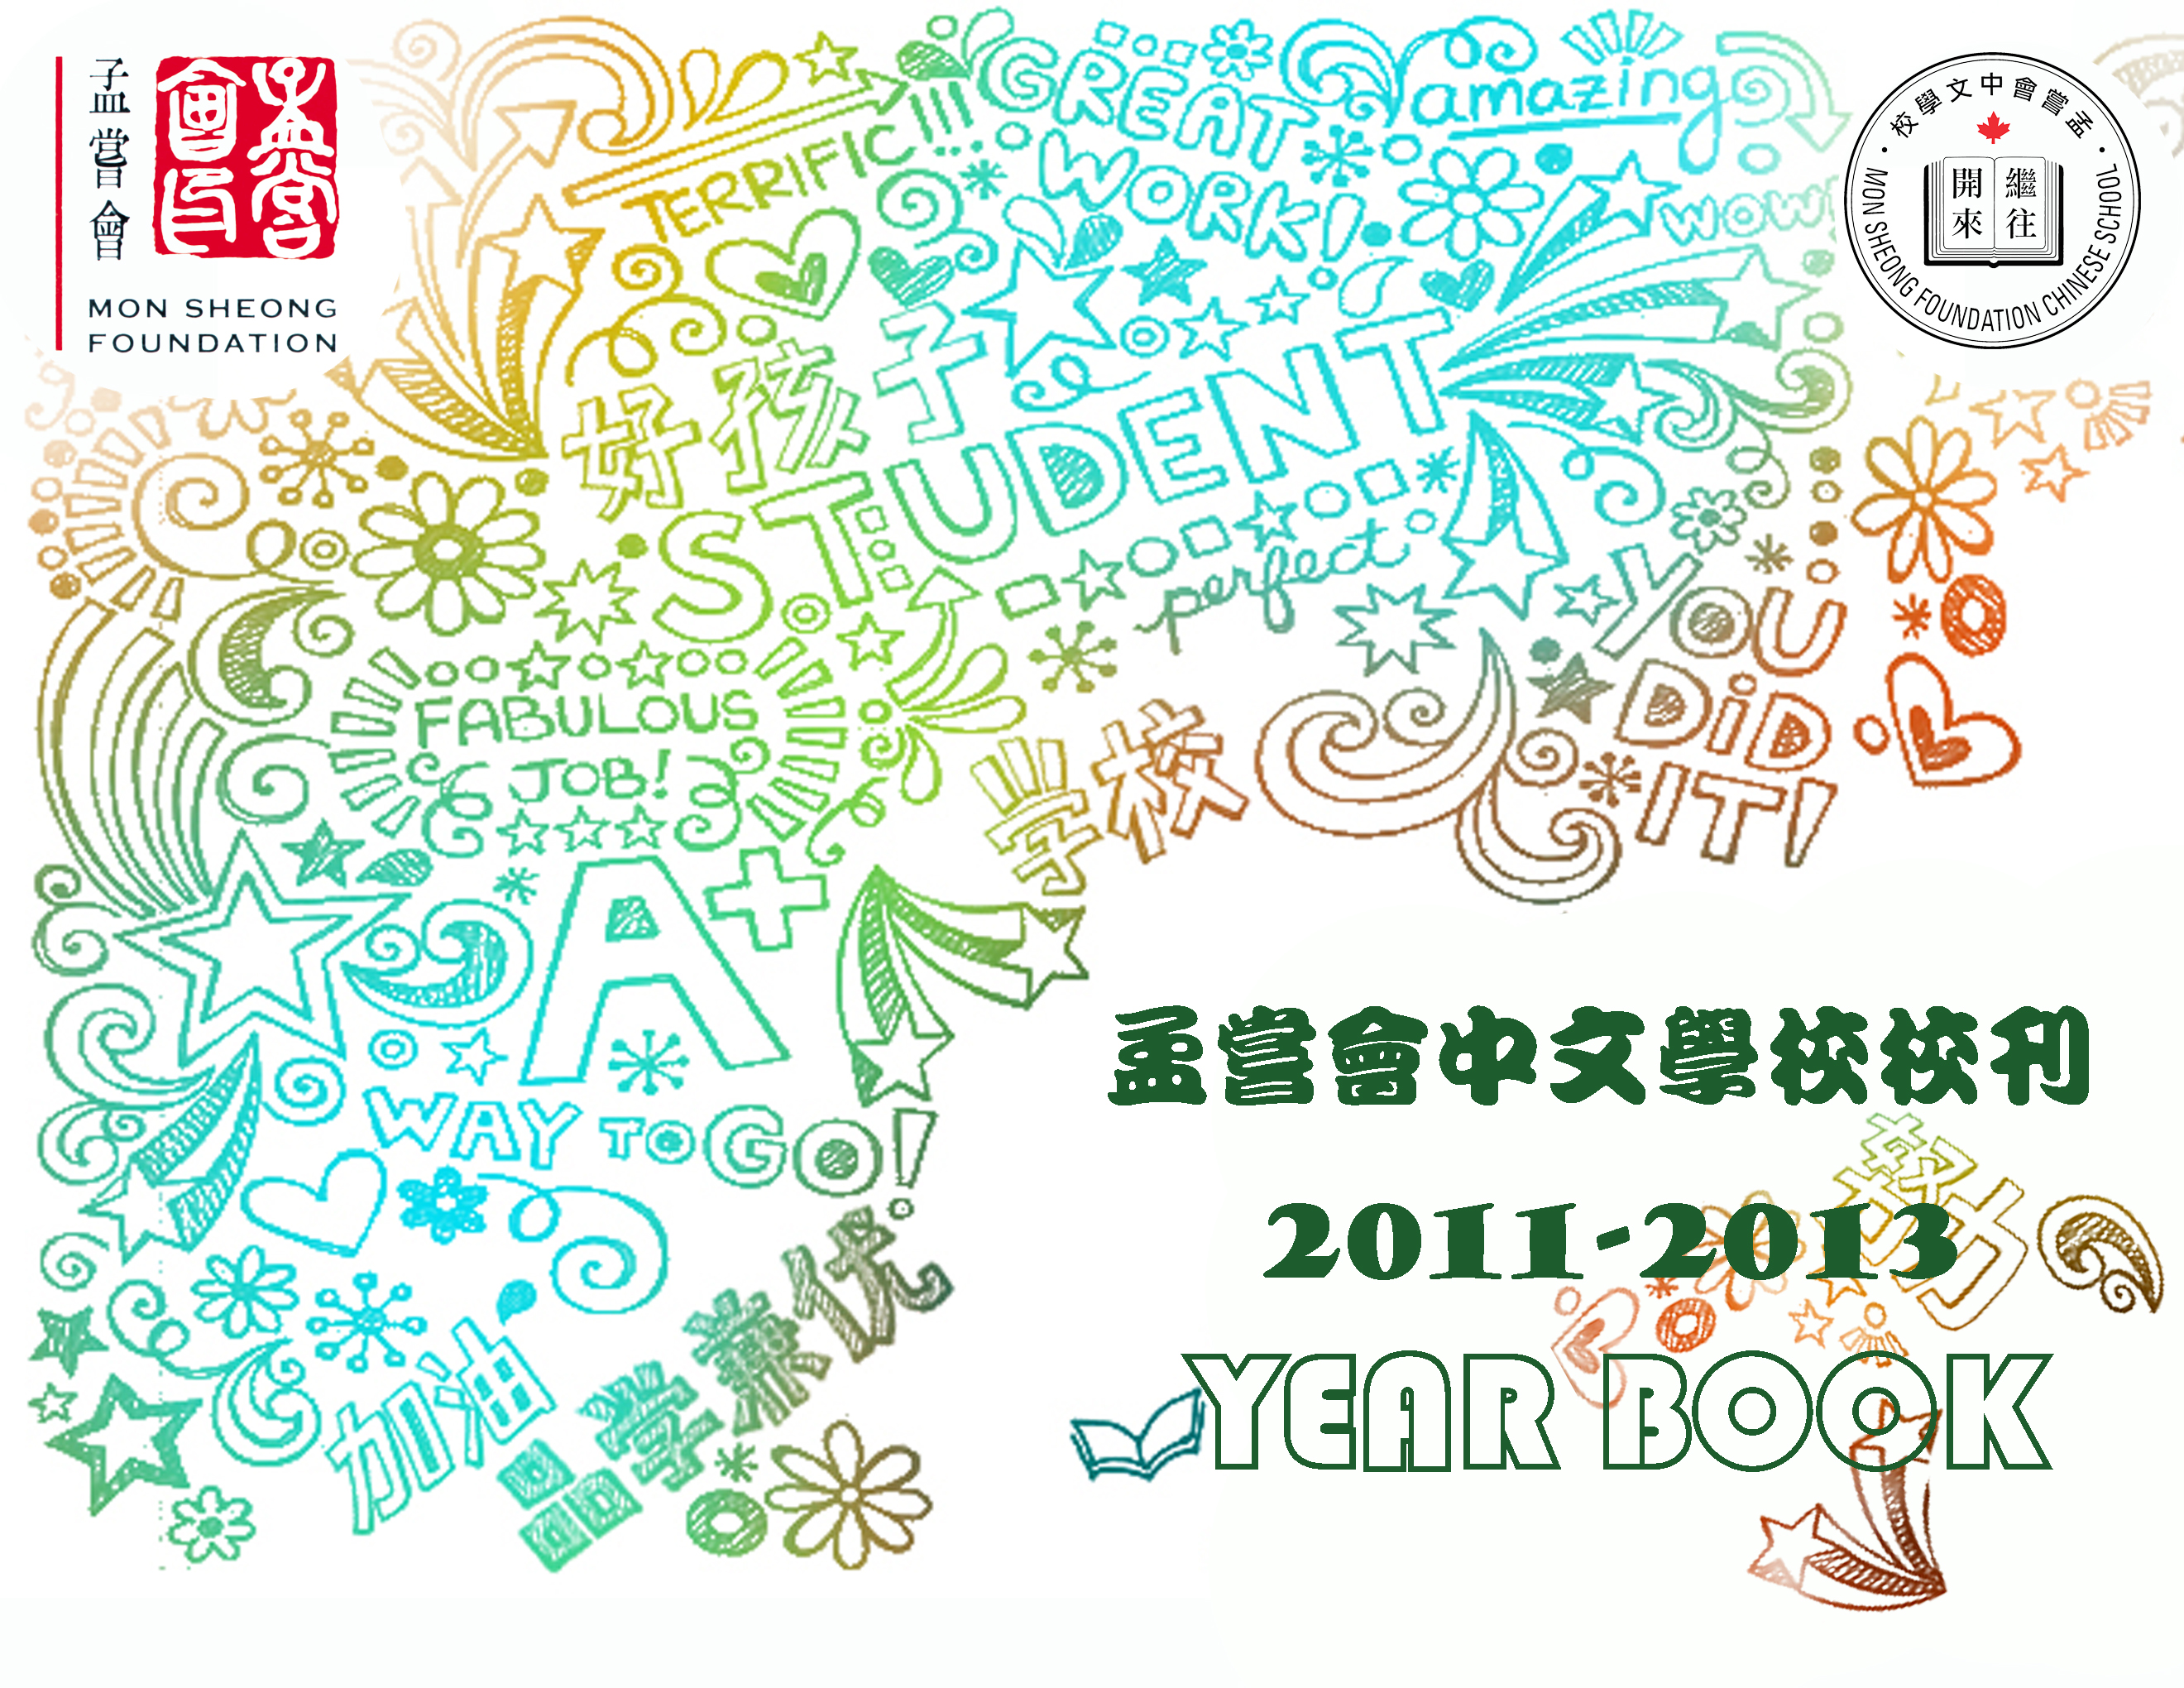 MSFCS YearBook 2011-2013 Poster